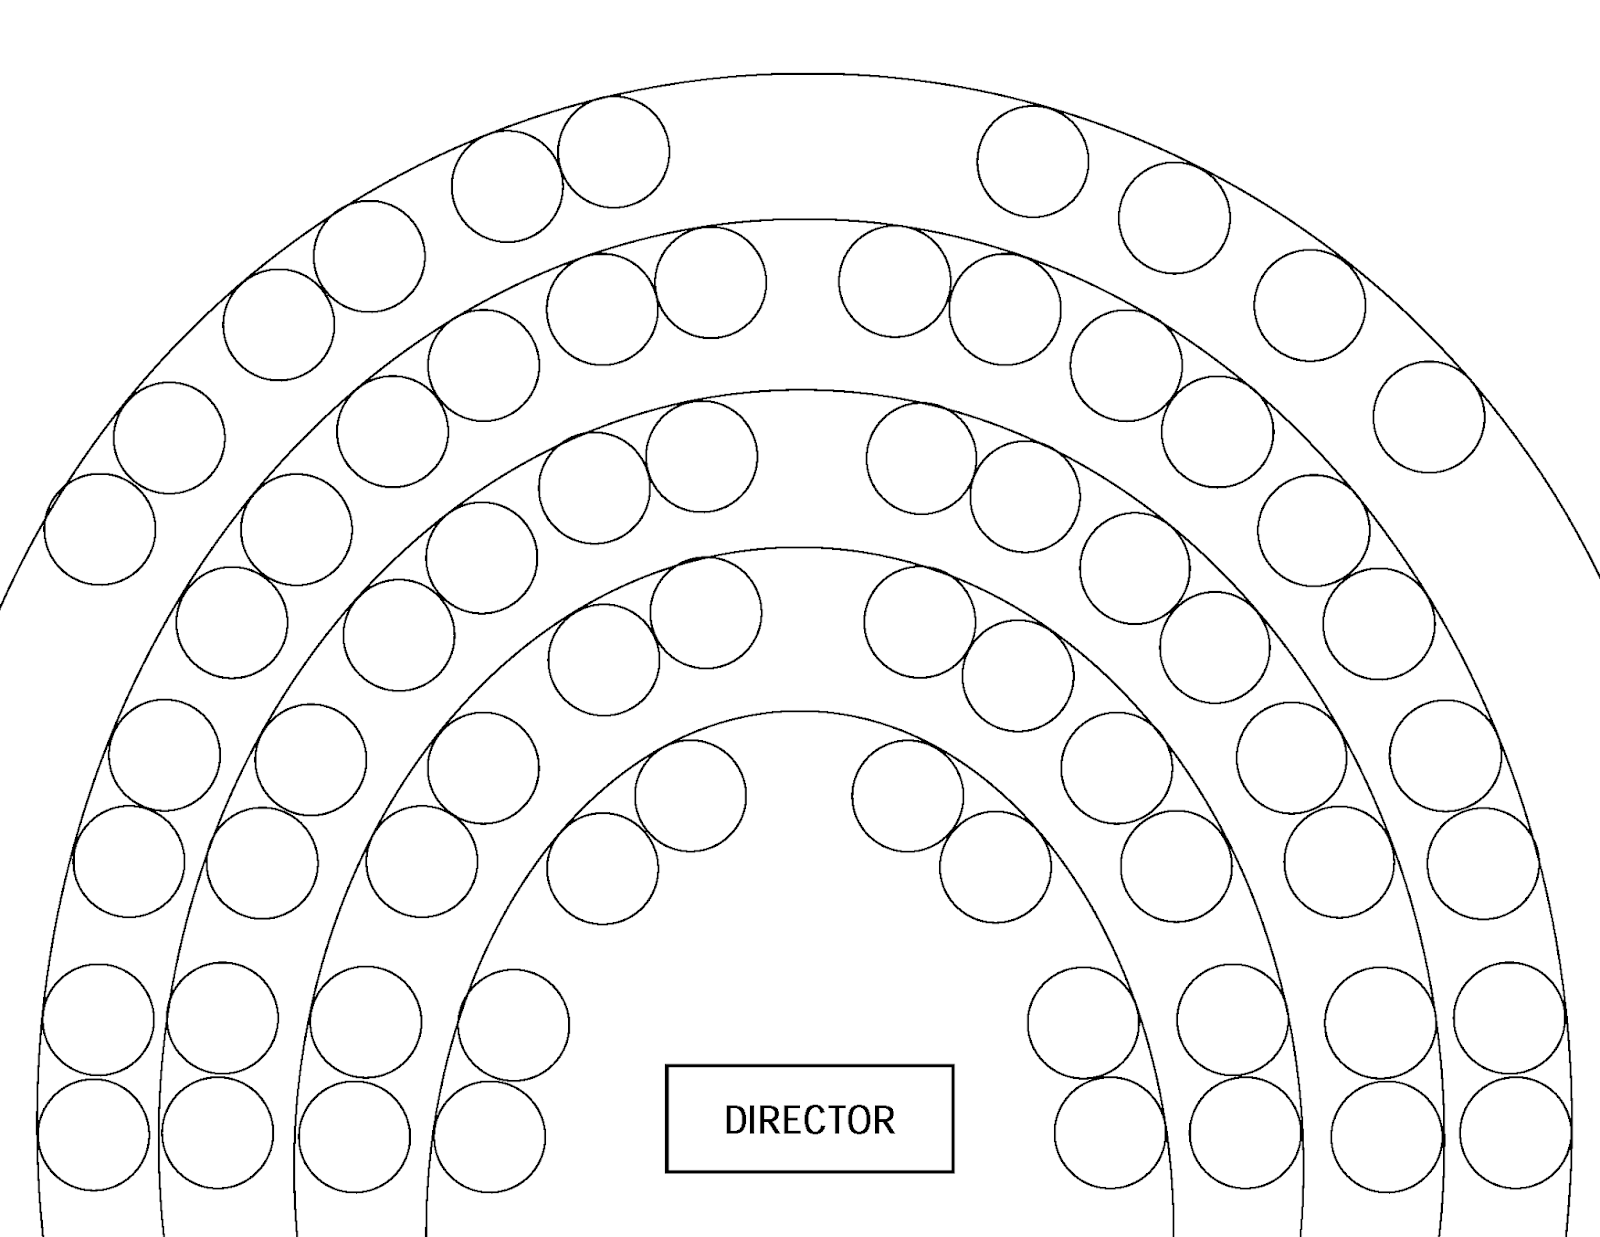 Orchestra Seating Chart Worksheet